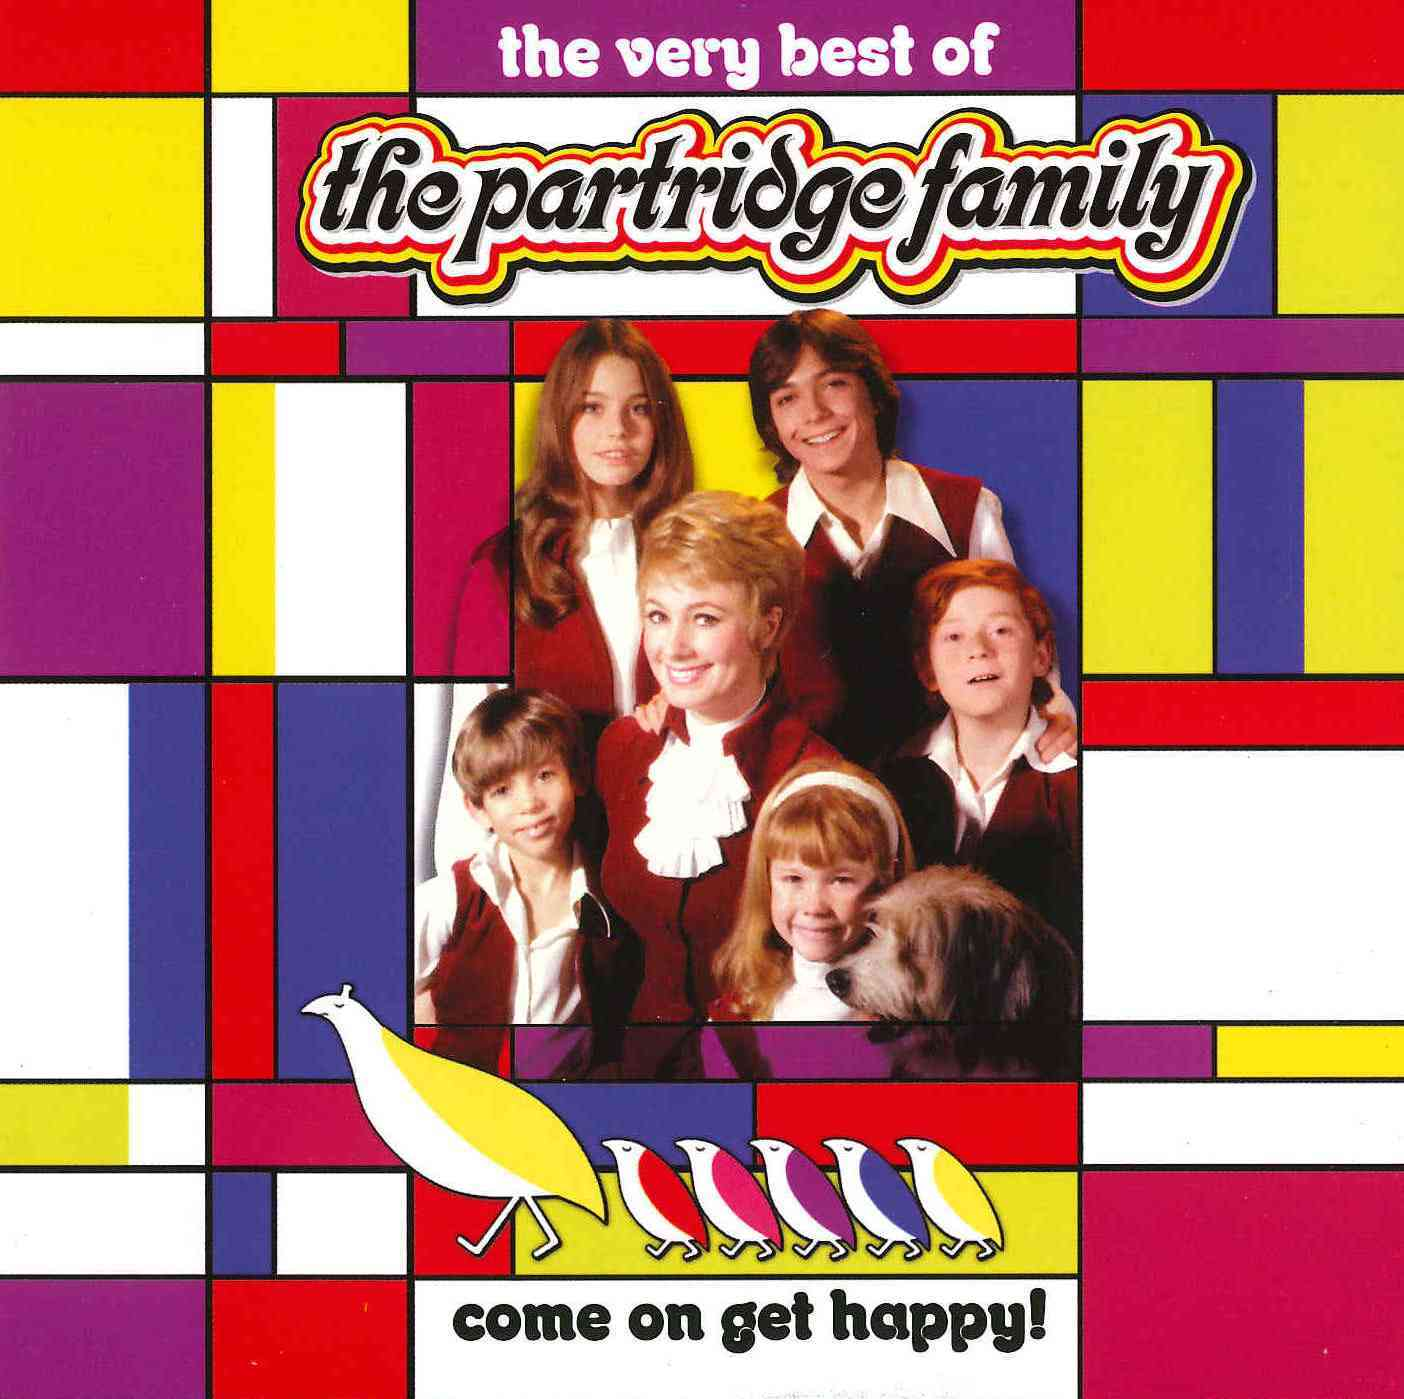 Partridge Family - Come On, Get Happy: The Very Best of The Partridge Family